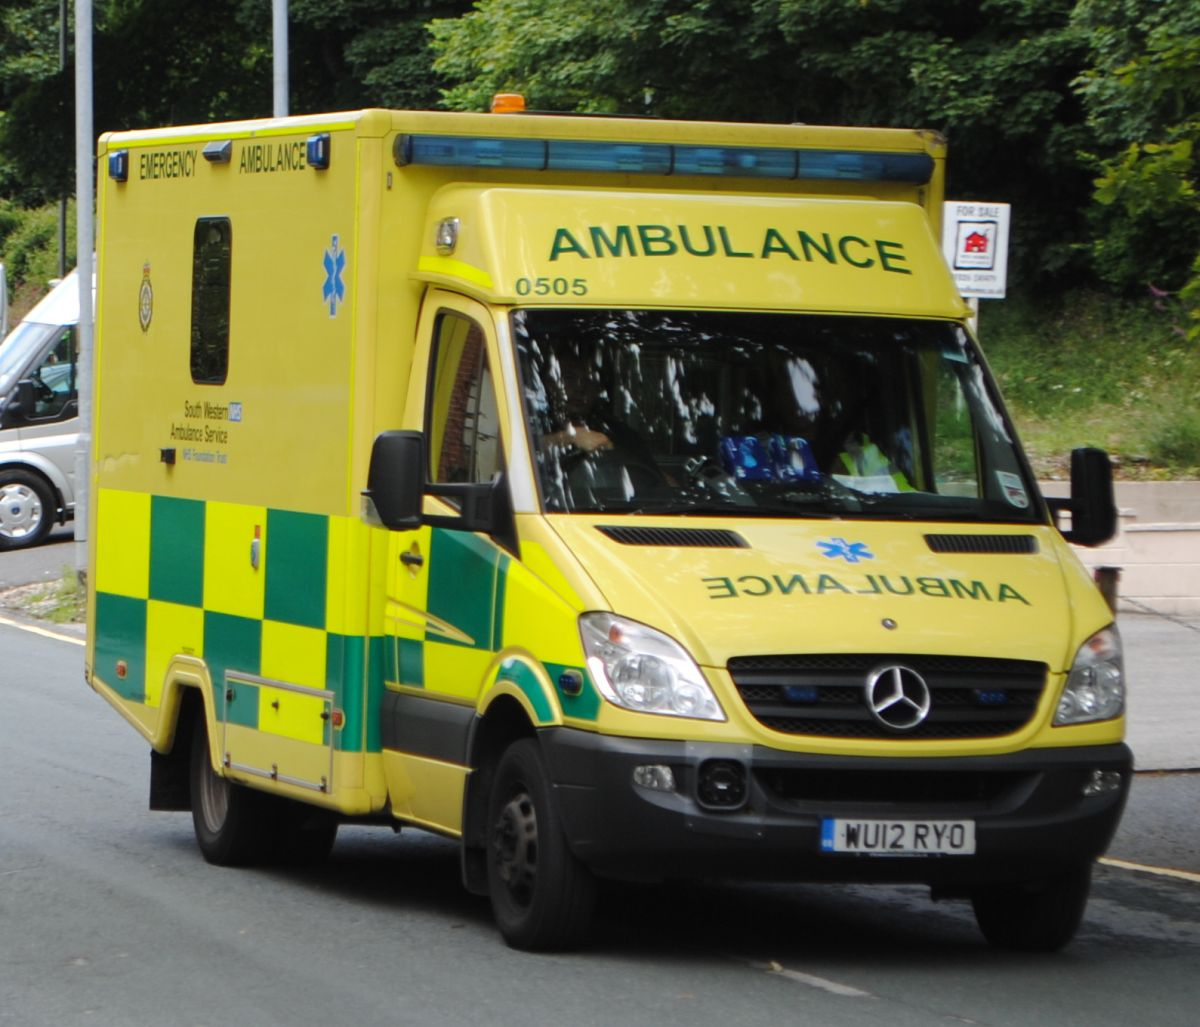 'Health service changes haven't affected ambulance performance'